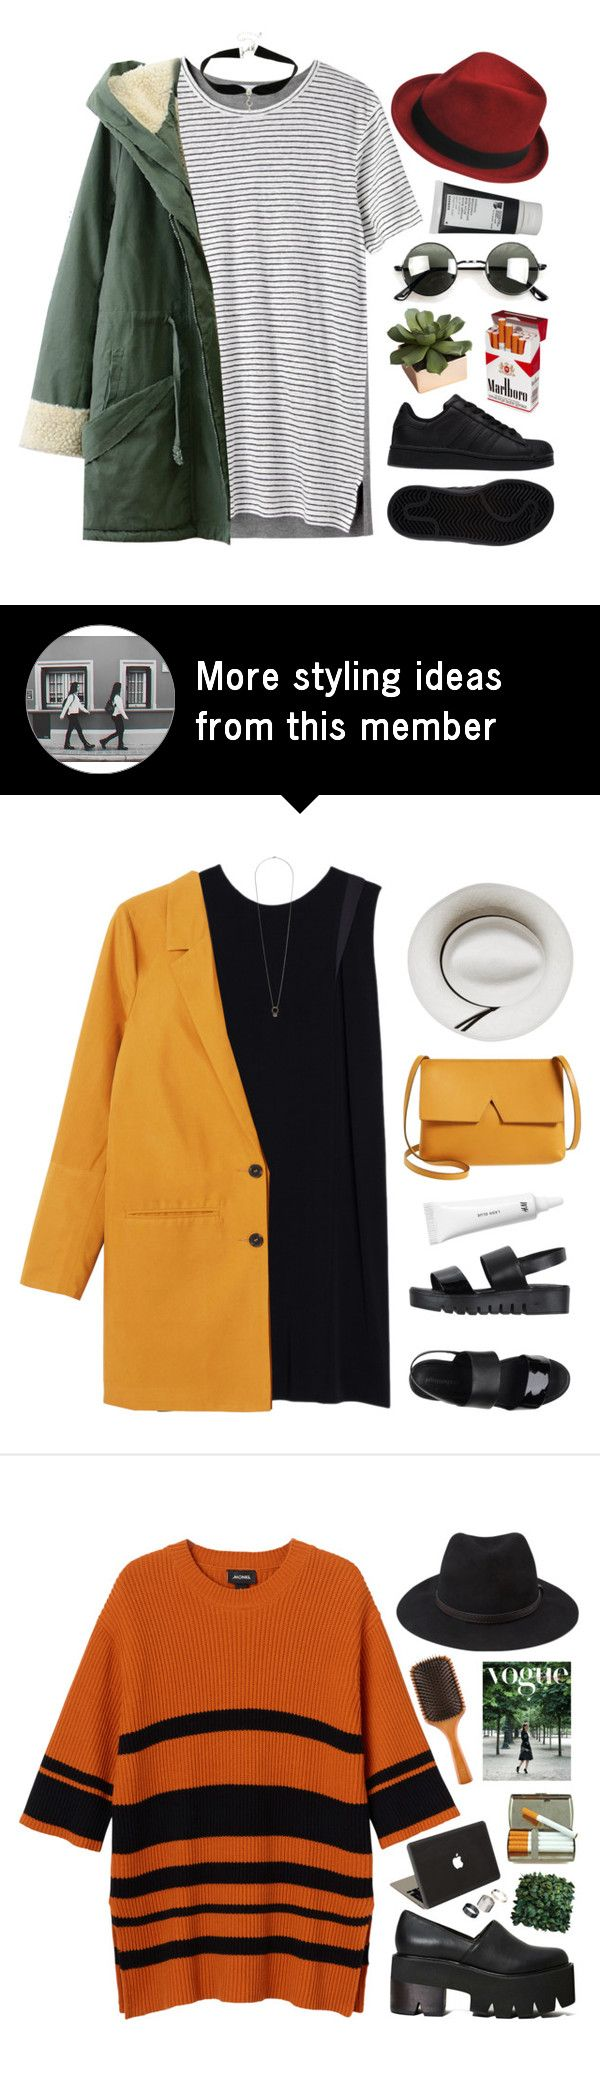 """""""#872"""" by maartinavg on Polyvore featuring T By Alexander Wang, Retrò, adidas, Stetson, Korres and CB2"""